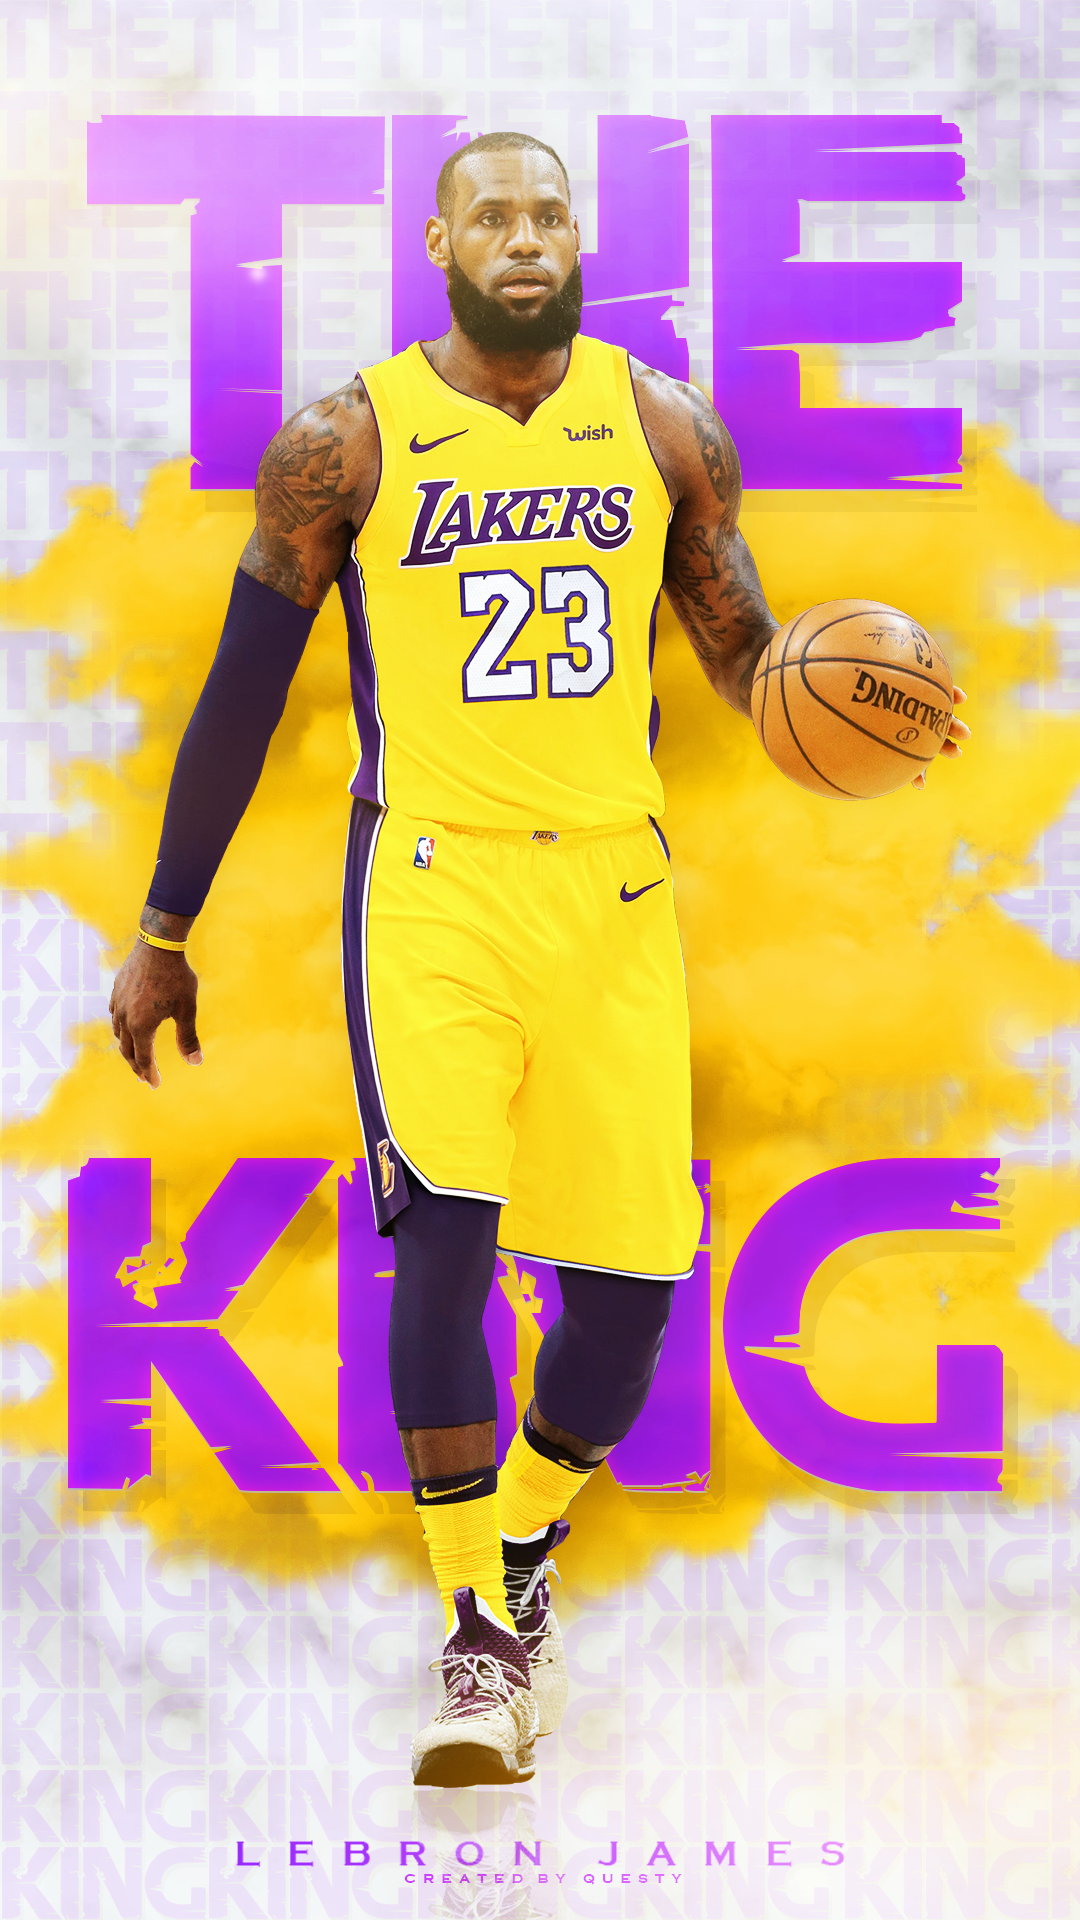 Phone Wallpapers on Behance Nba oyuncuları, Nba, Basketbol